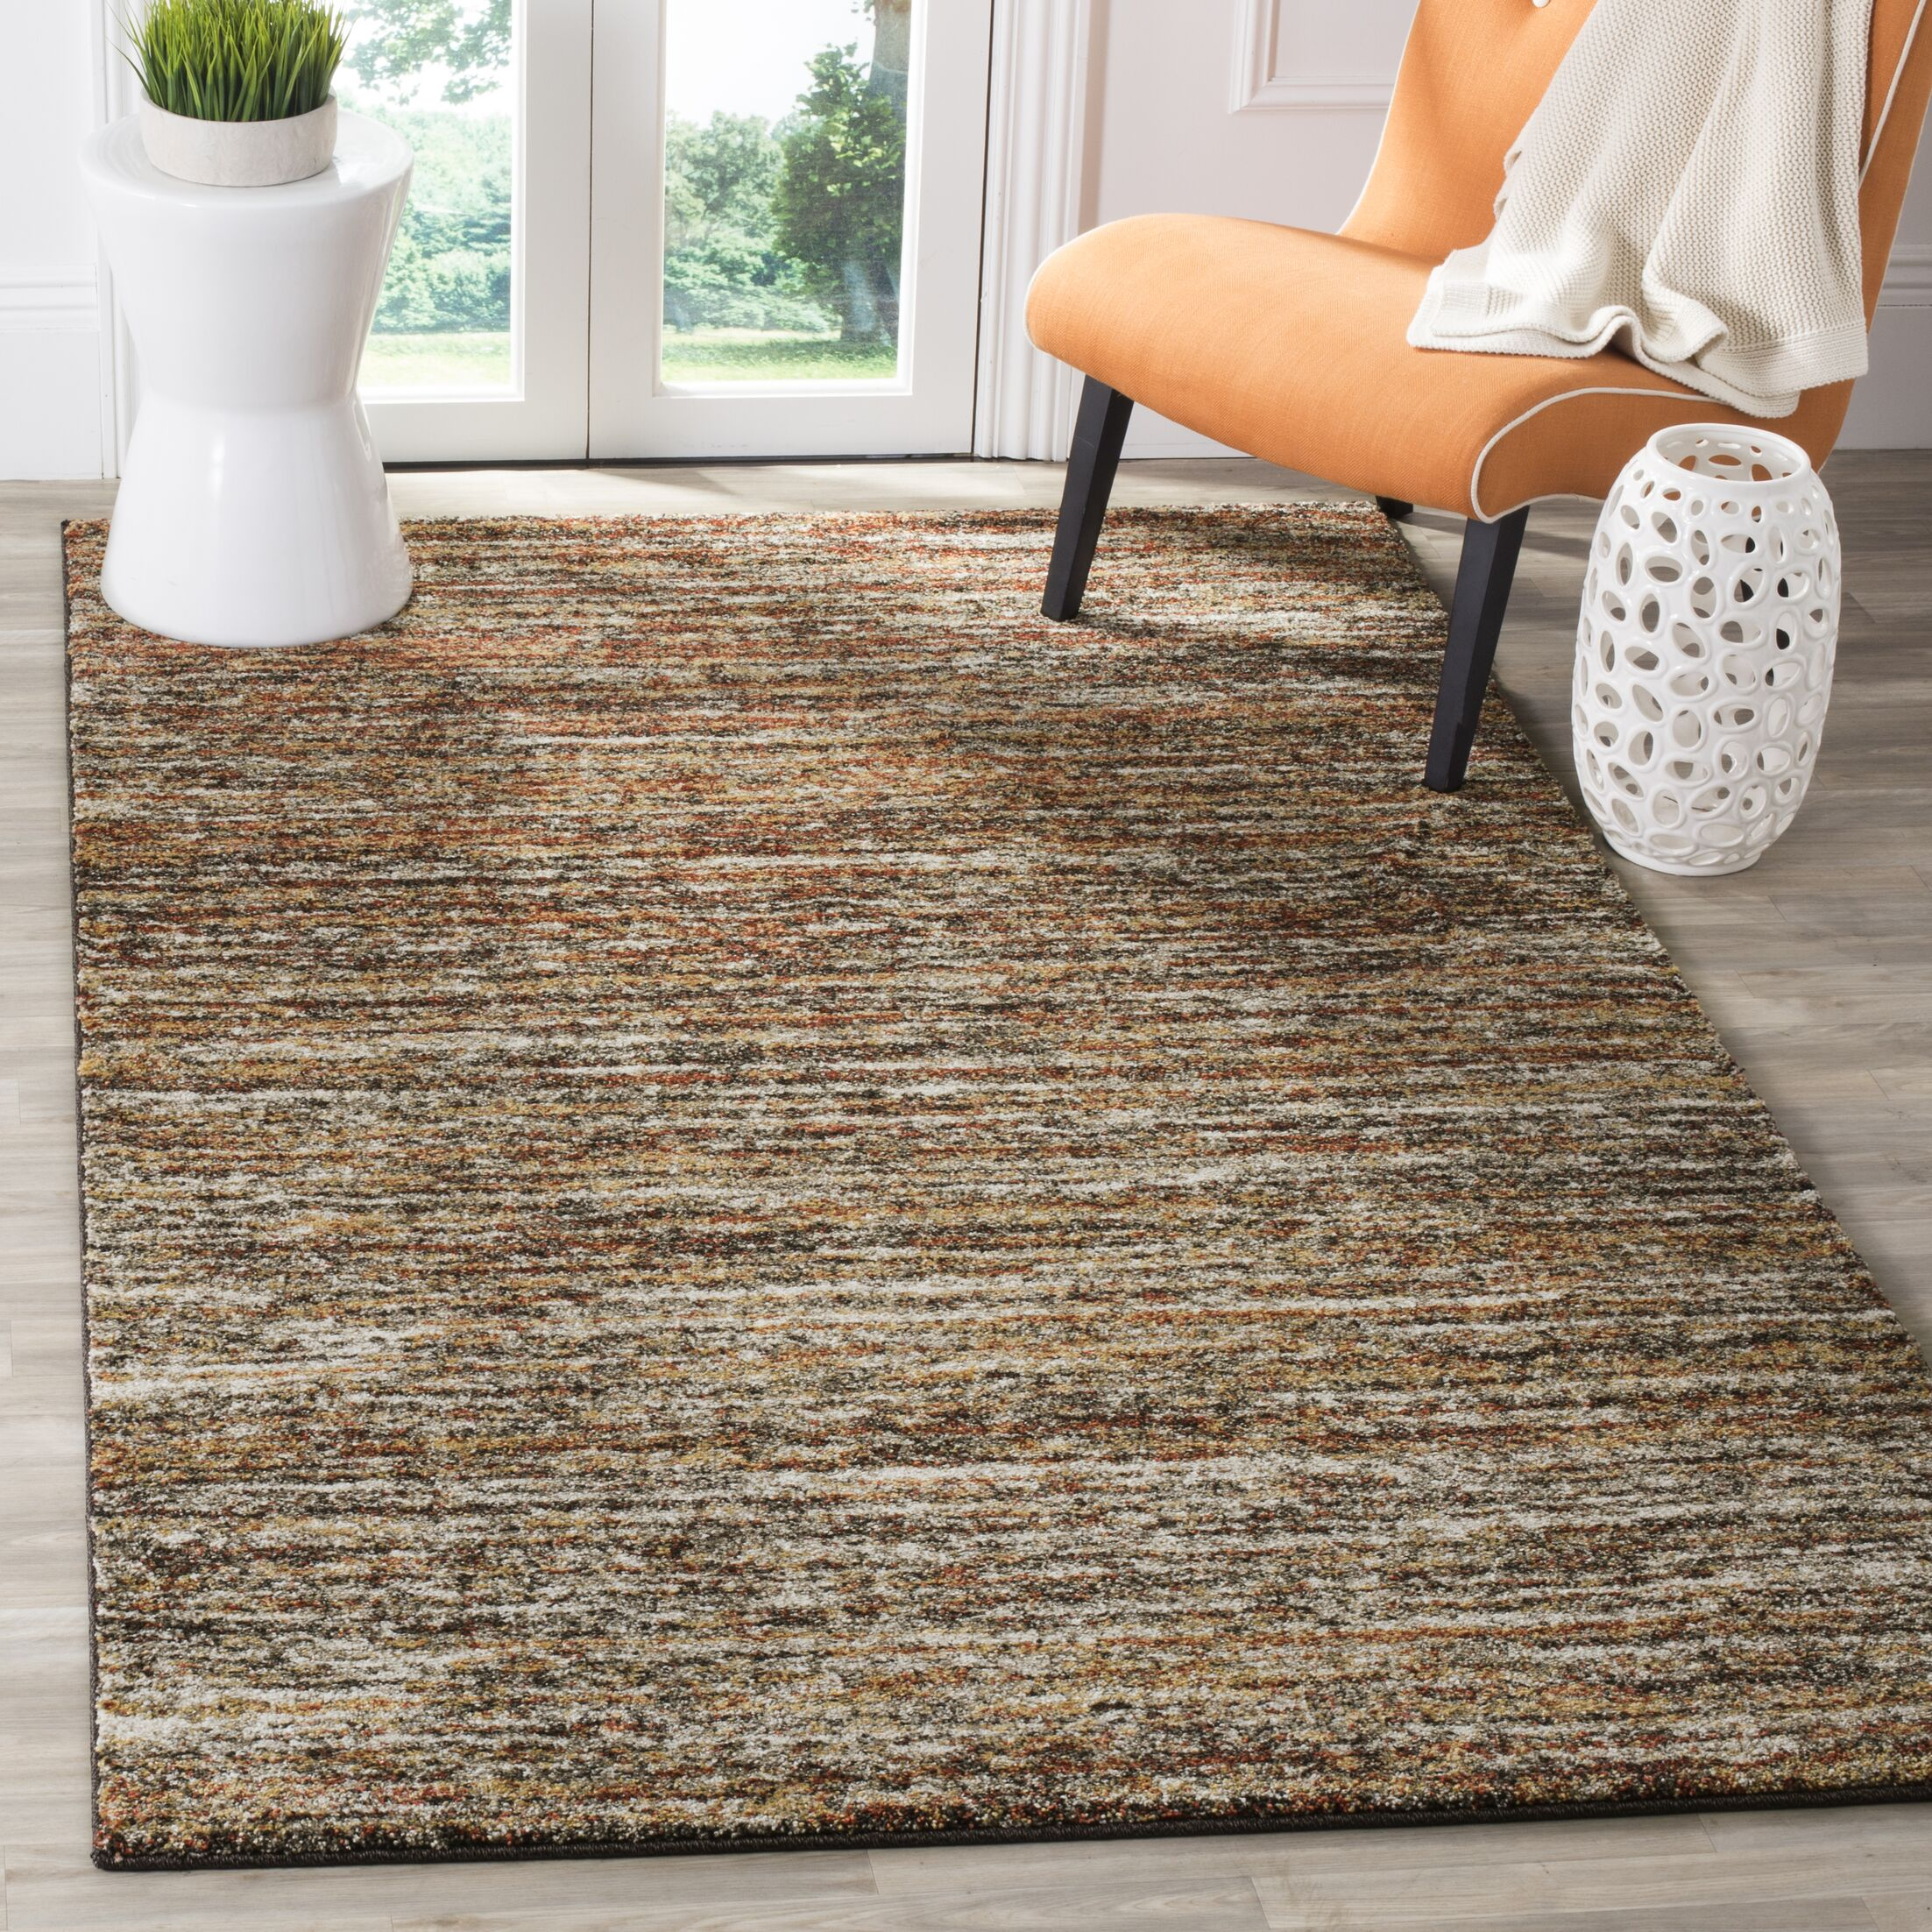 Gaines Ivory/Gold Area Rug Rug Size: Rectangle 6' x 9'